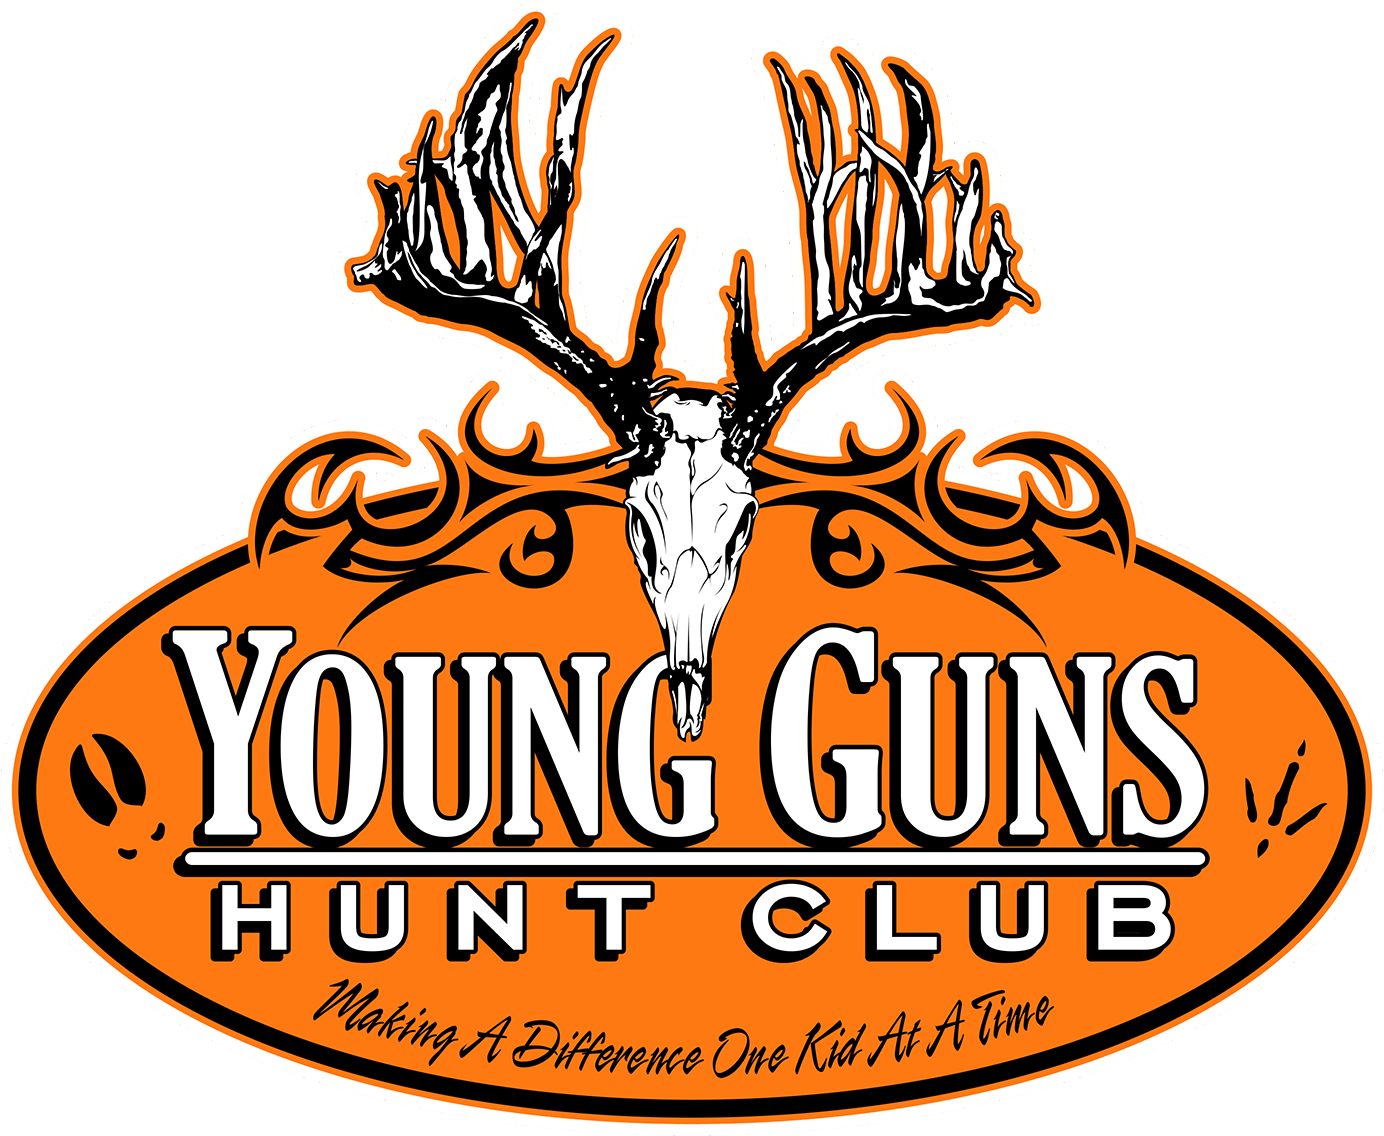 Hunt club turkey logo clipart clipart free library Young Guns Hunt Club – Making A Difference One Kid At A Time clipart free library